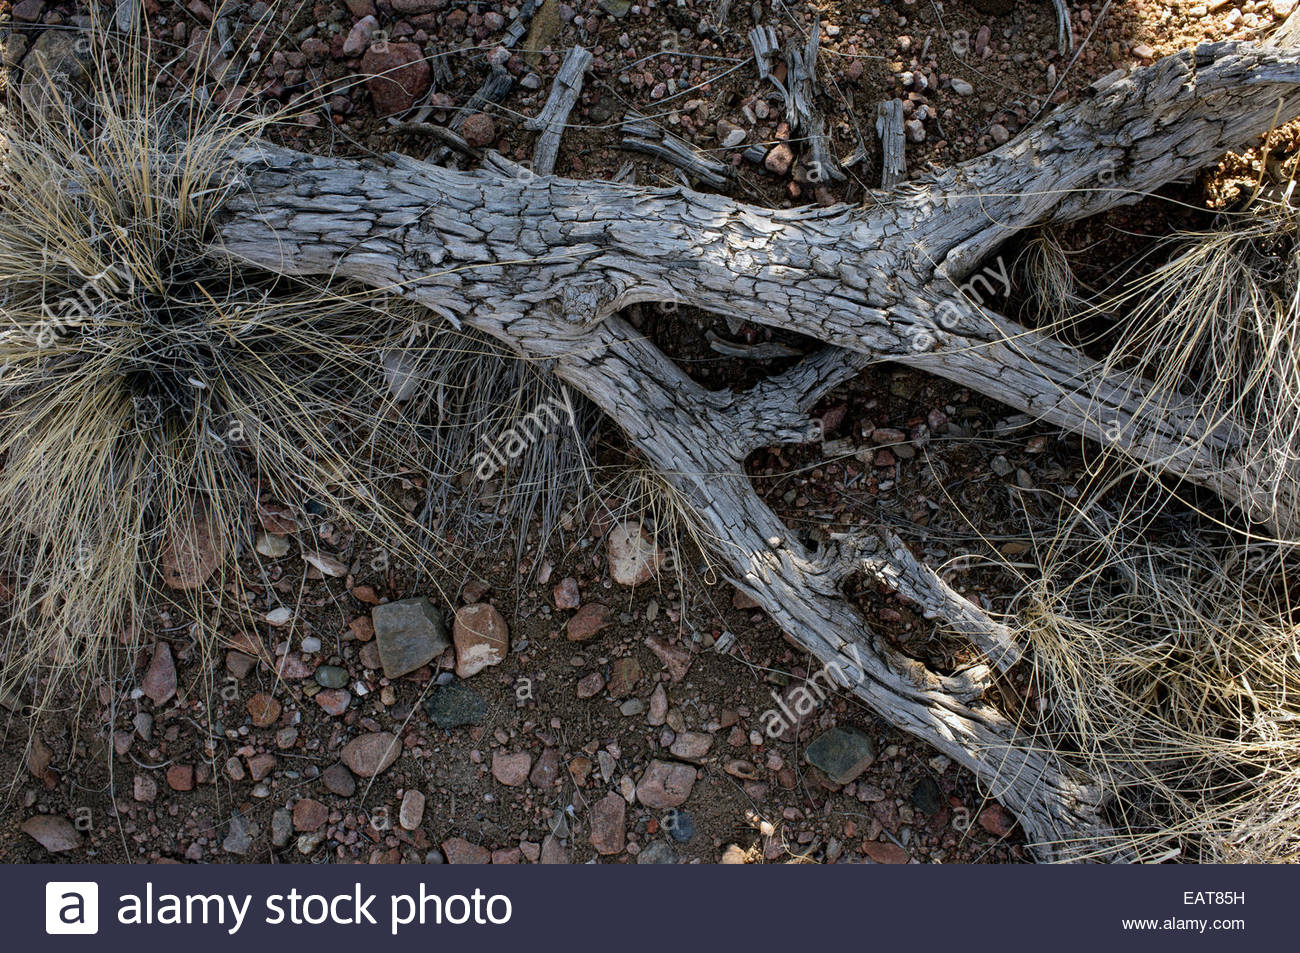 A weathered and sunbaked piece of wood rests in the Galisteo Basin - Stock Image